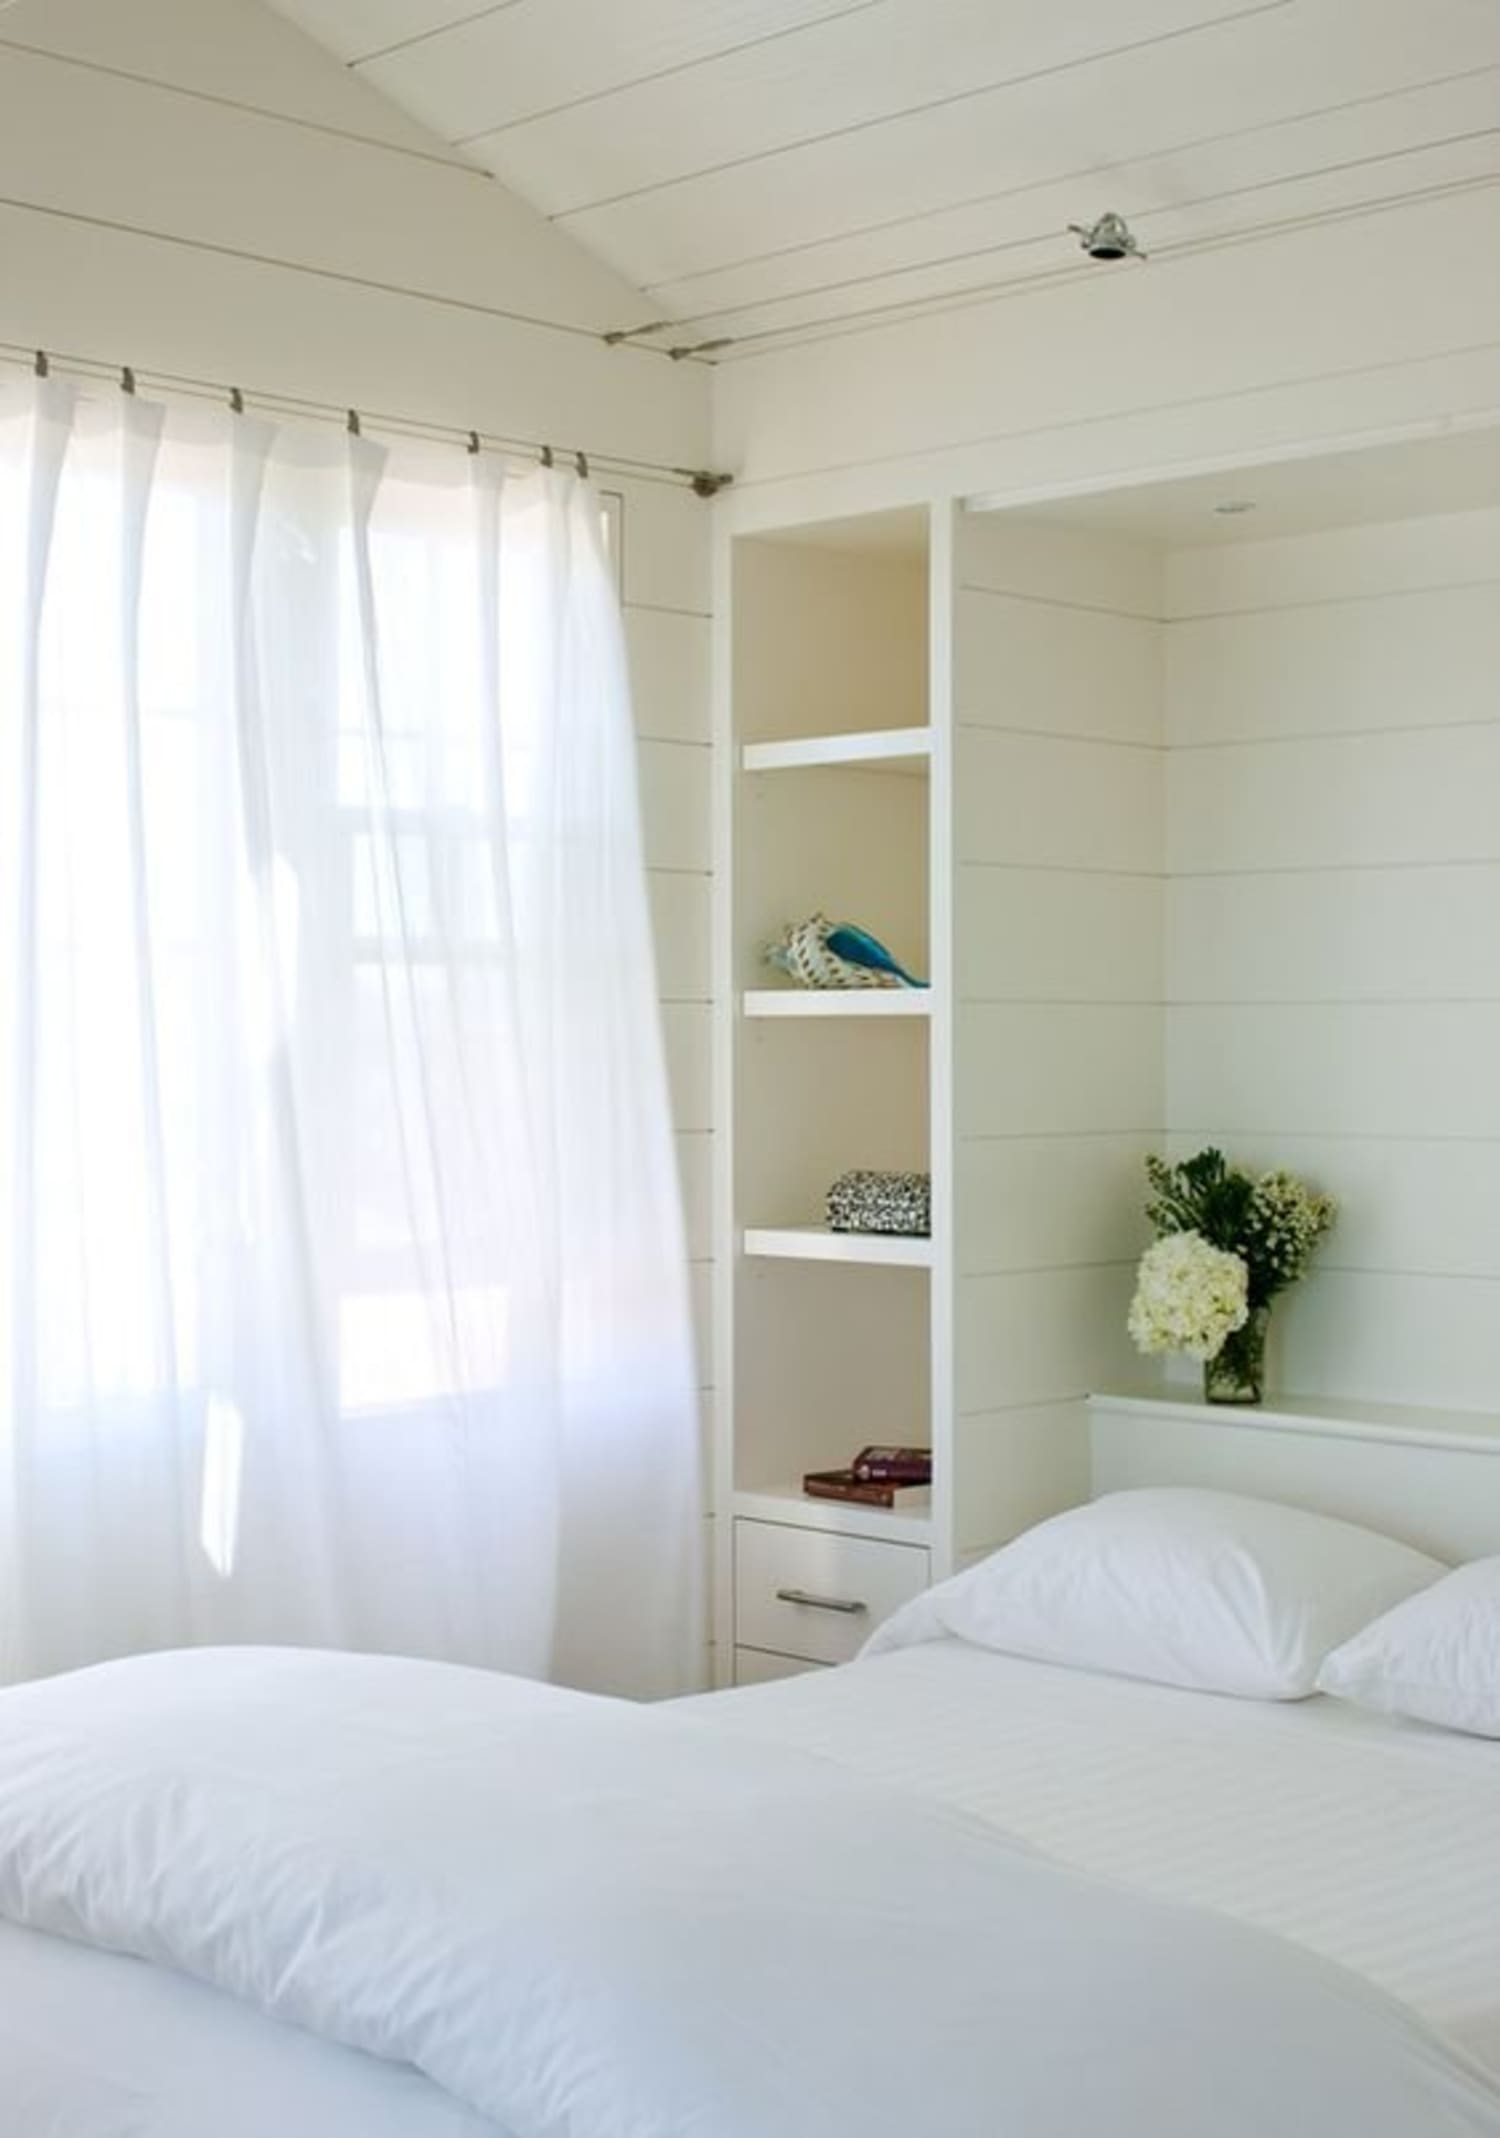 Clever Built-ins to Make the Most of Small Bedrooms ...